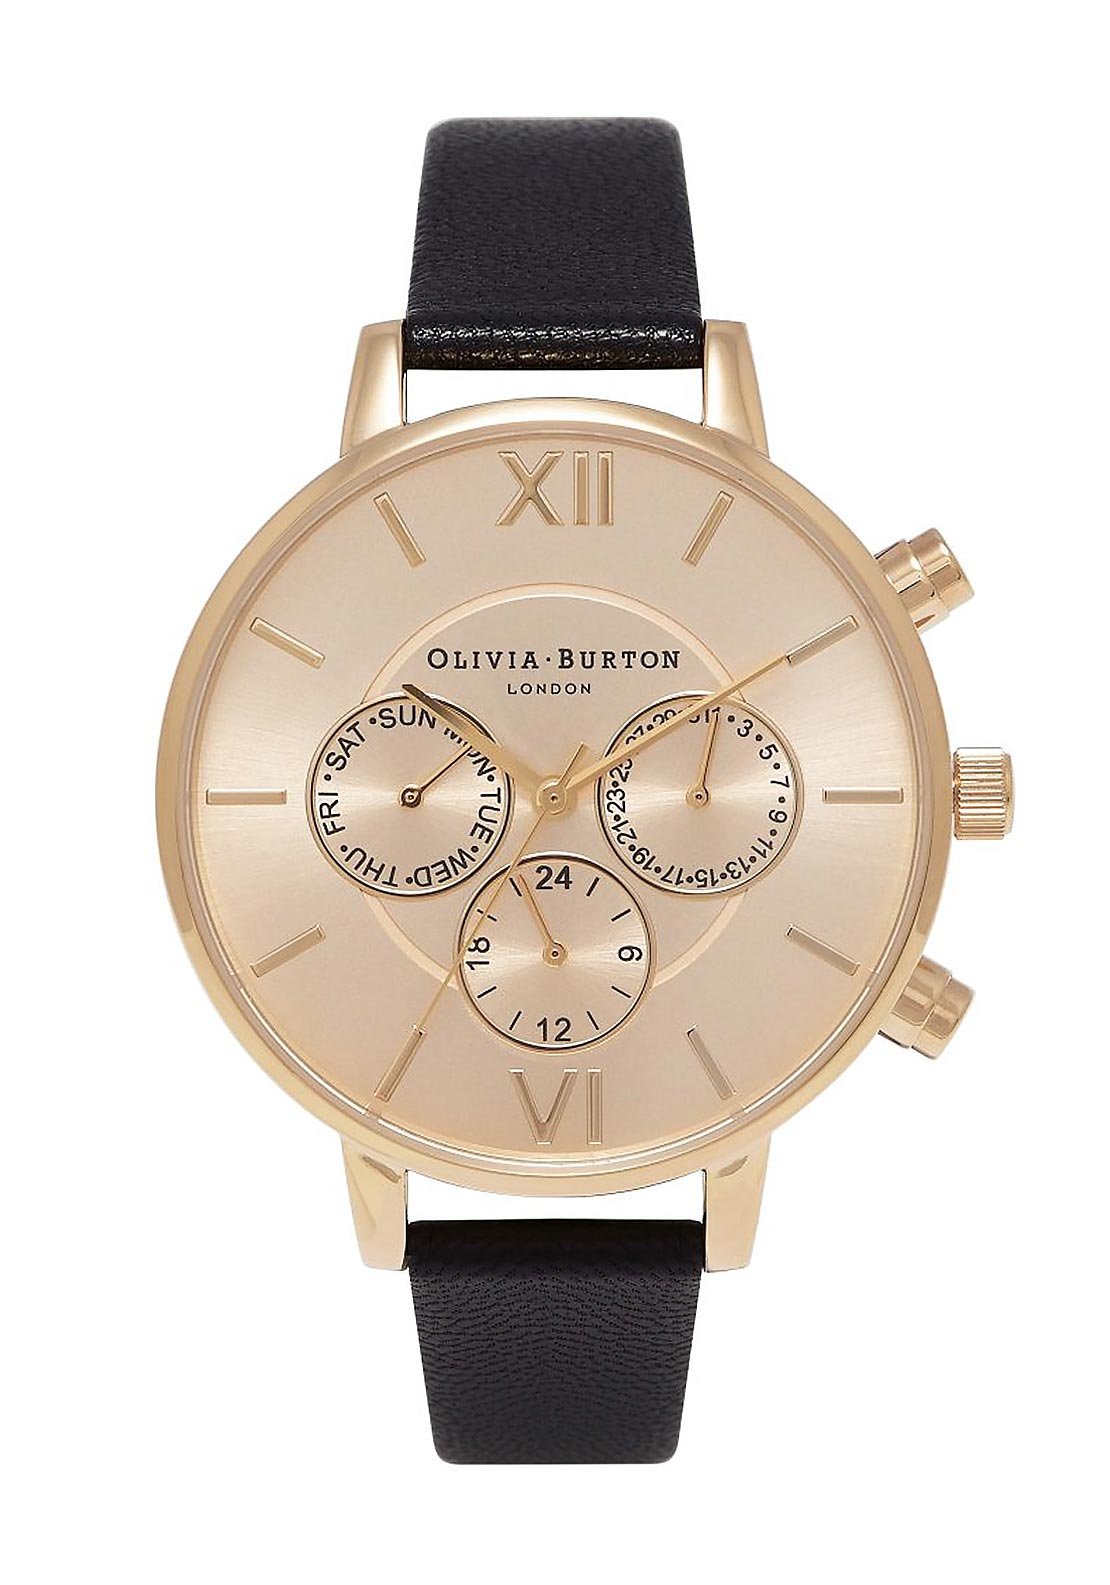 Olivia Burton Chrono Detail Sunray Watch, Black & Gold